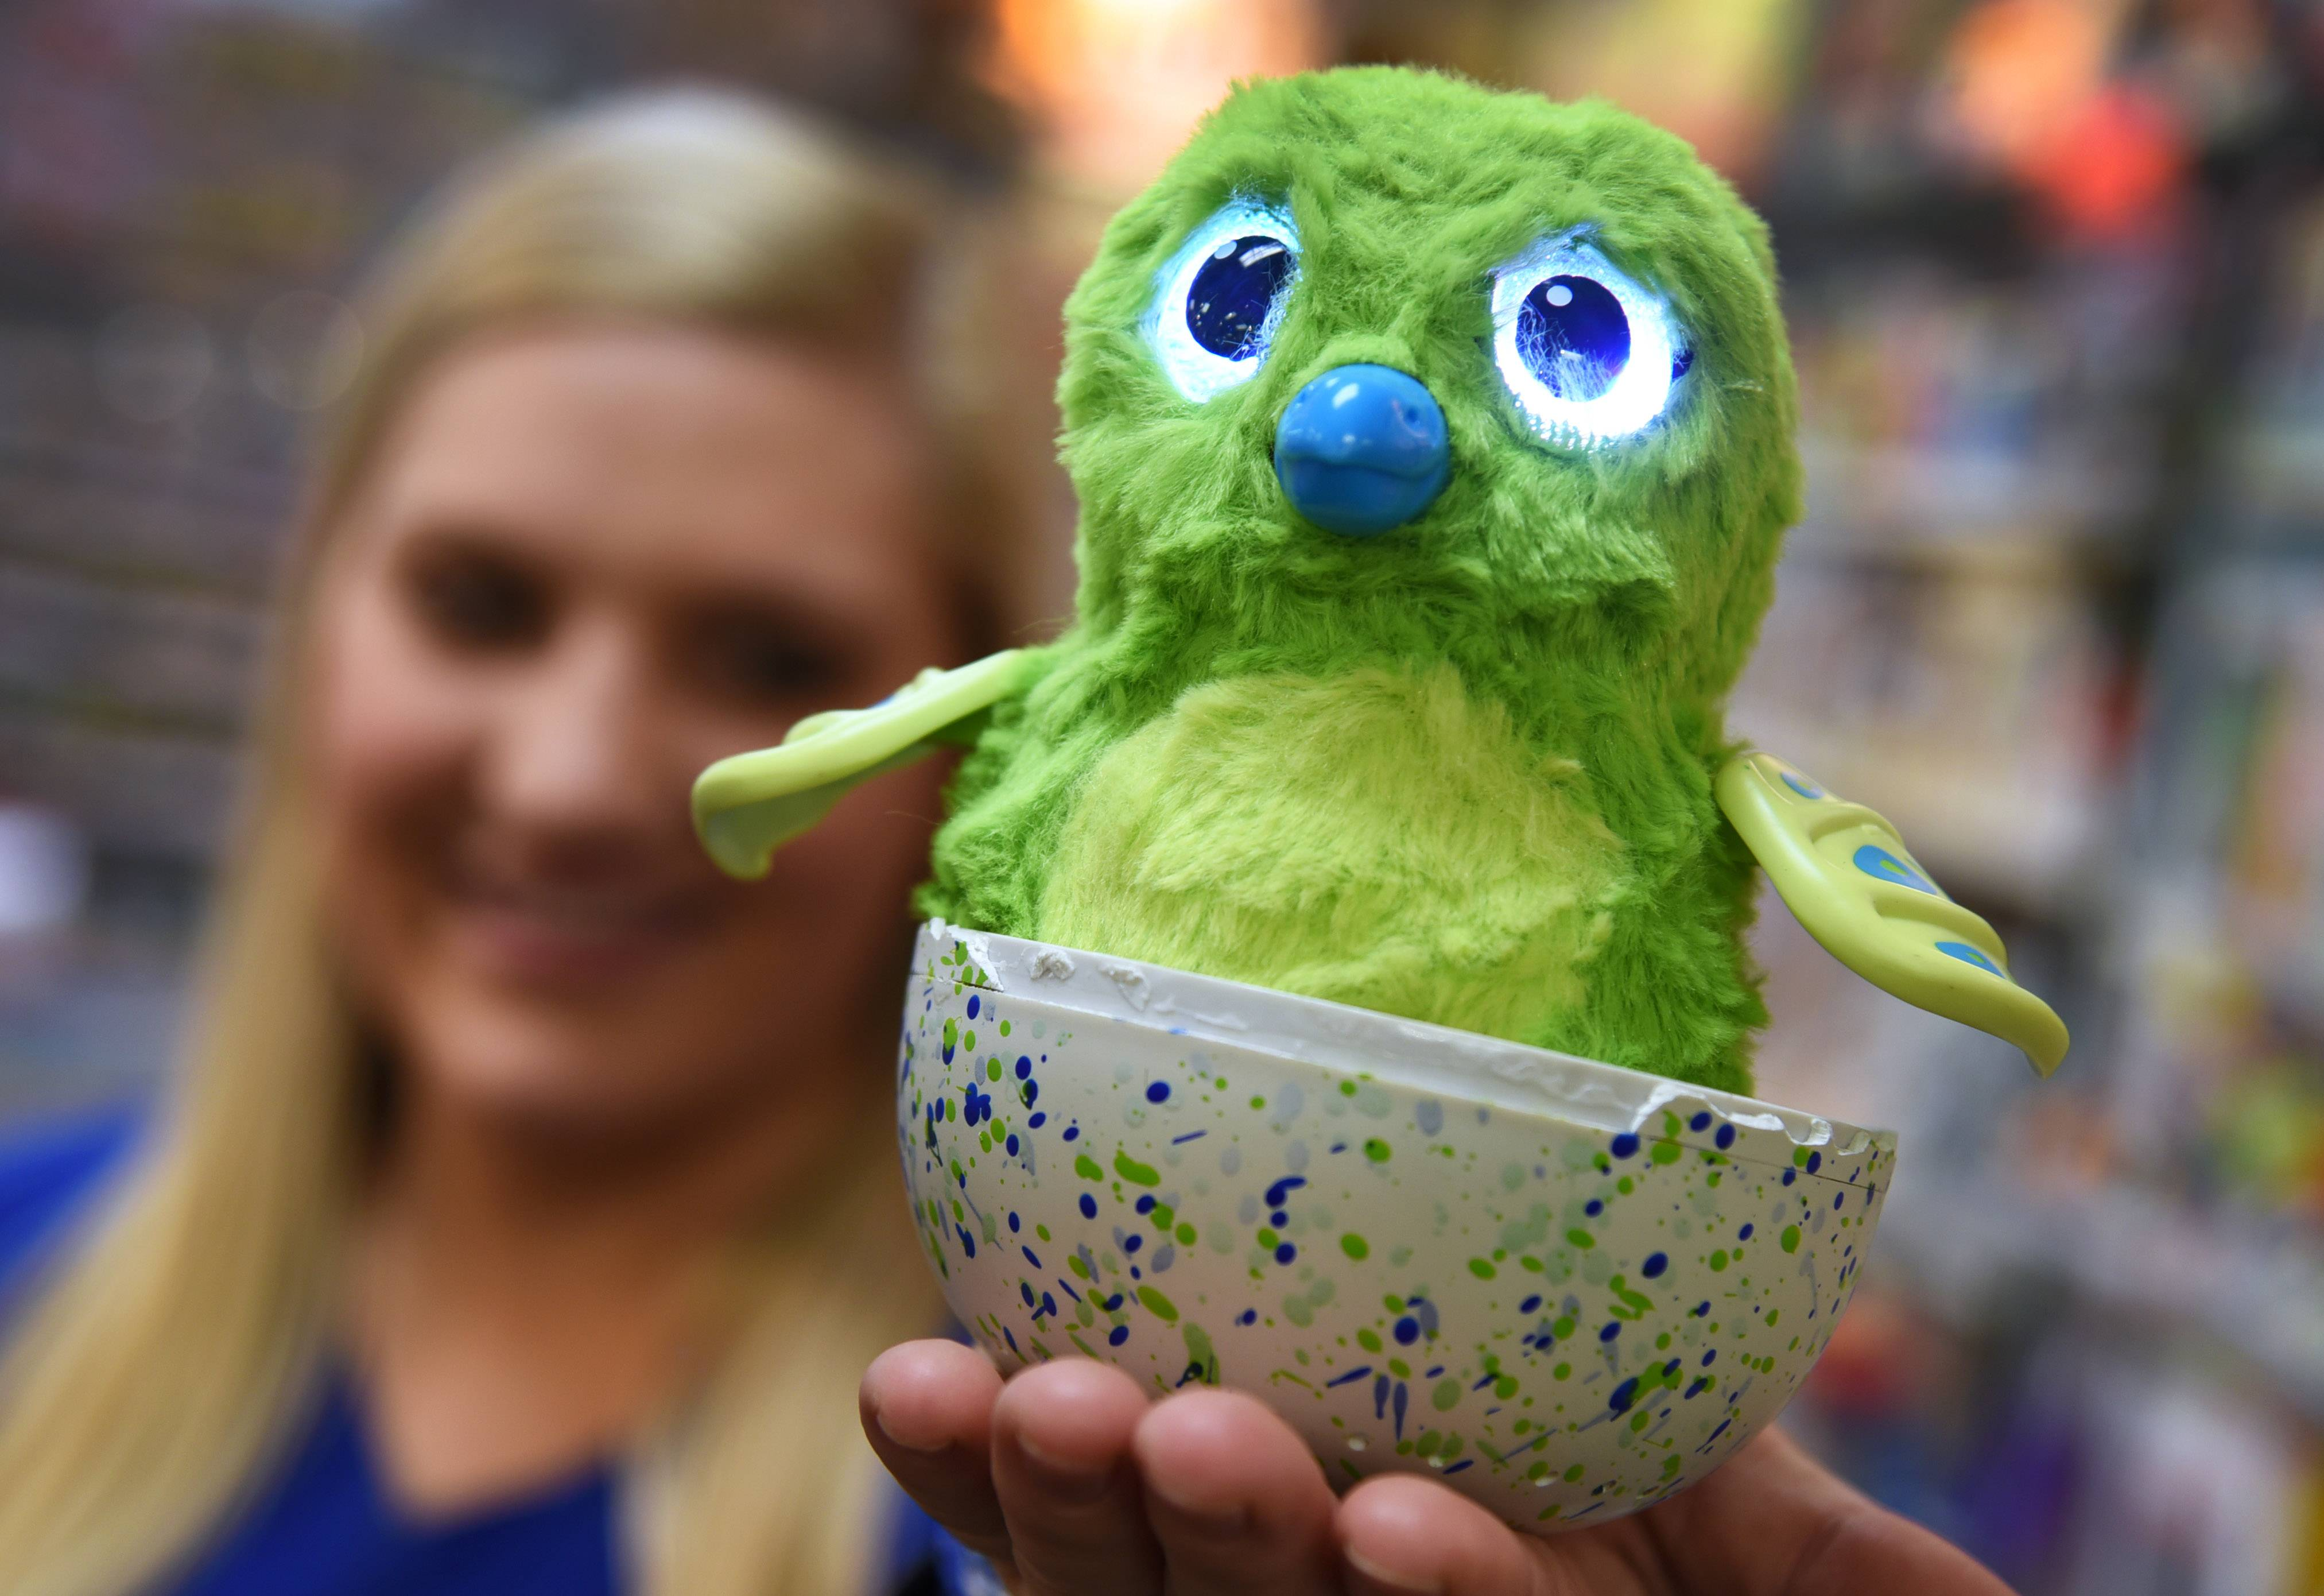 Hatchimals expected to arrive at some Wal-Mart stores before Christmas